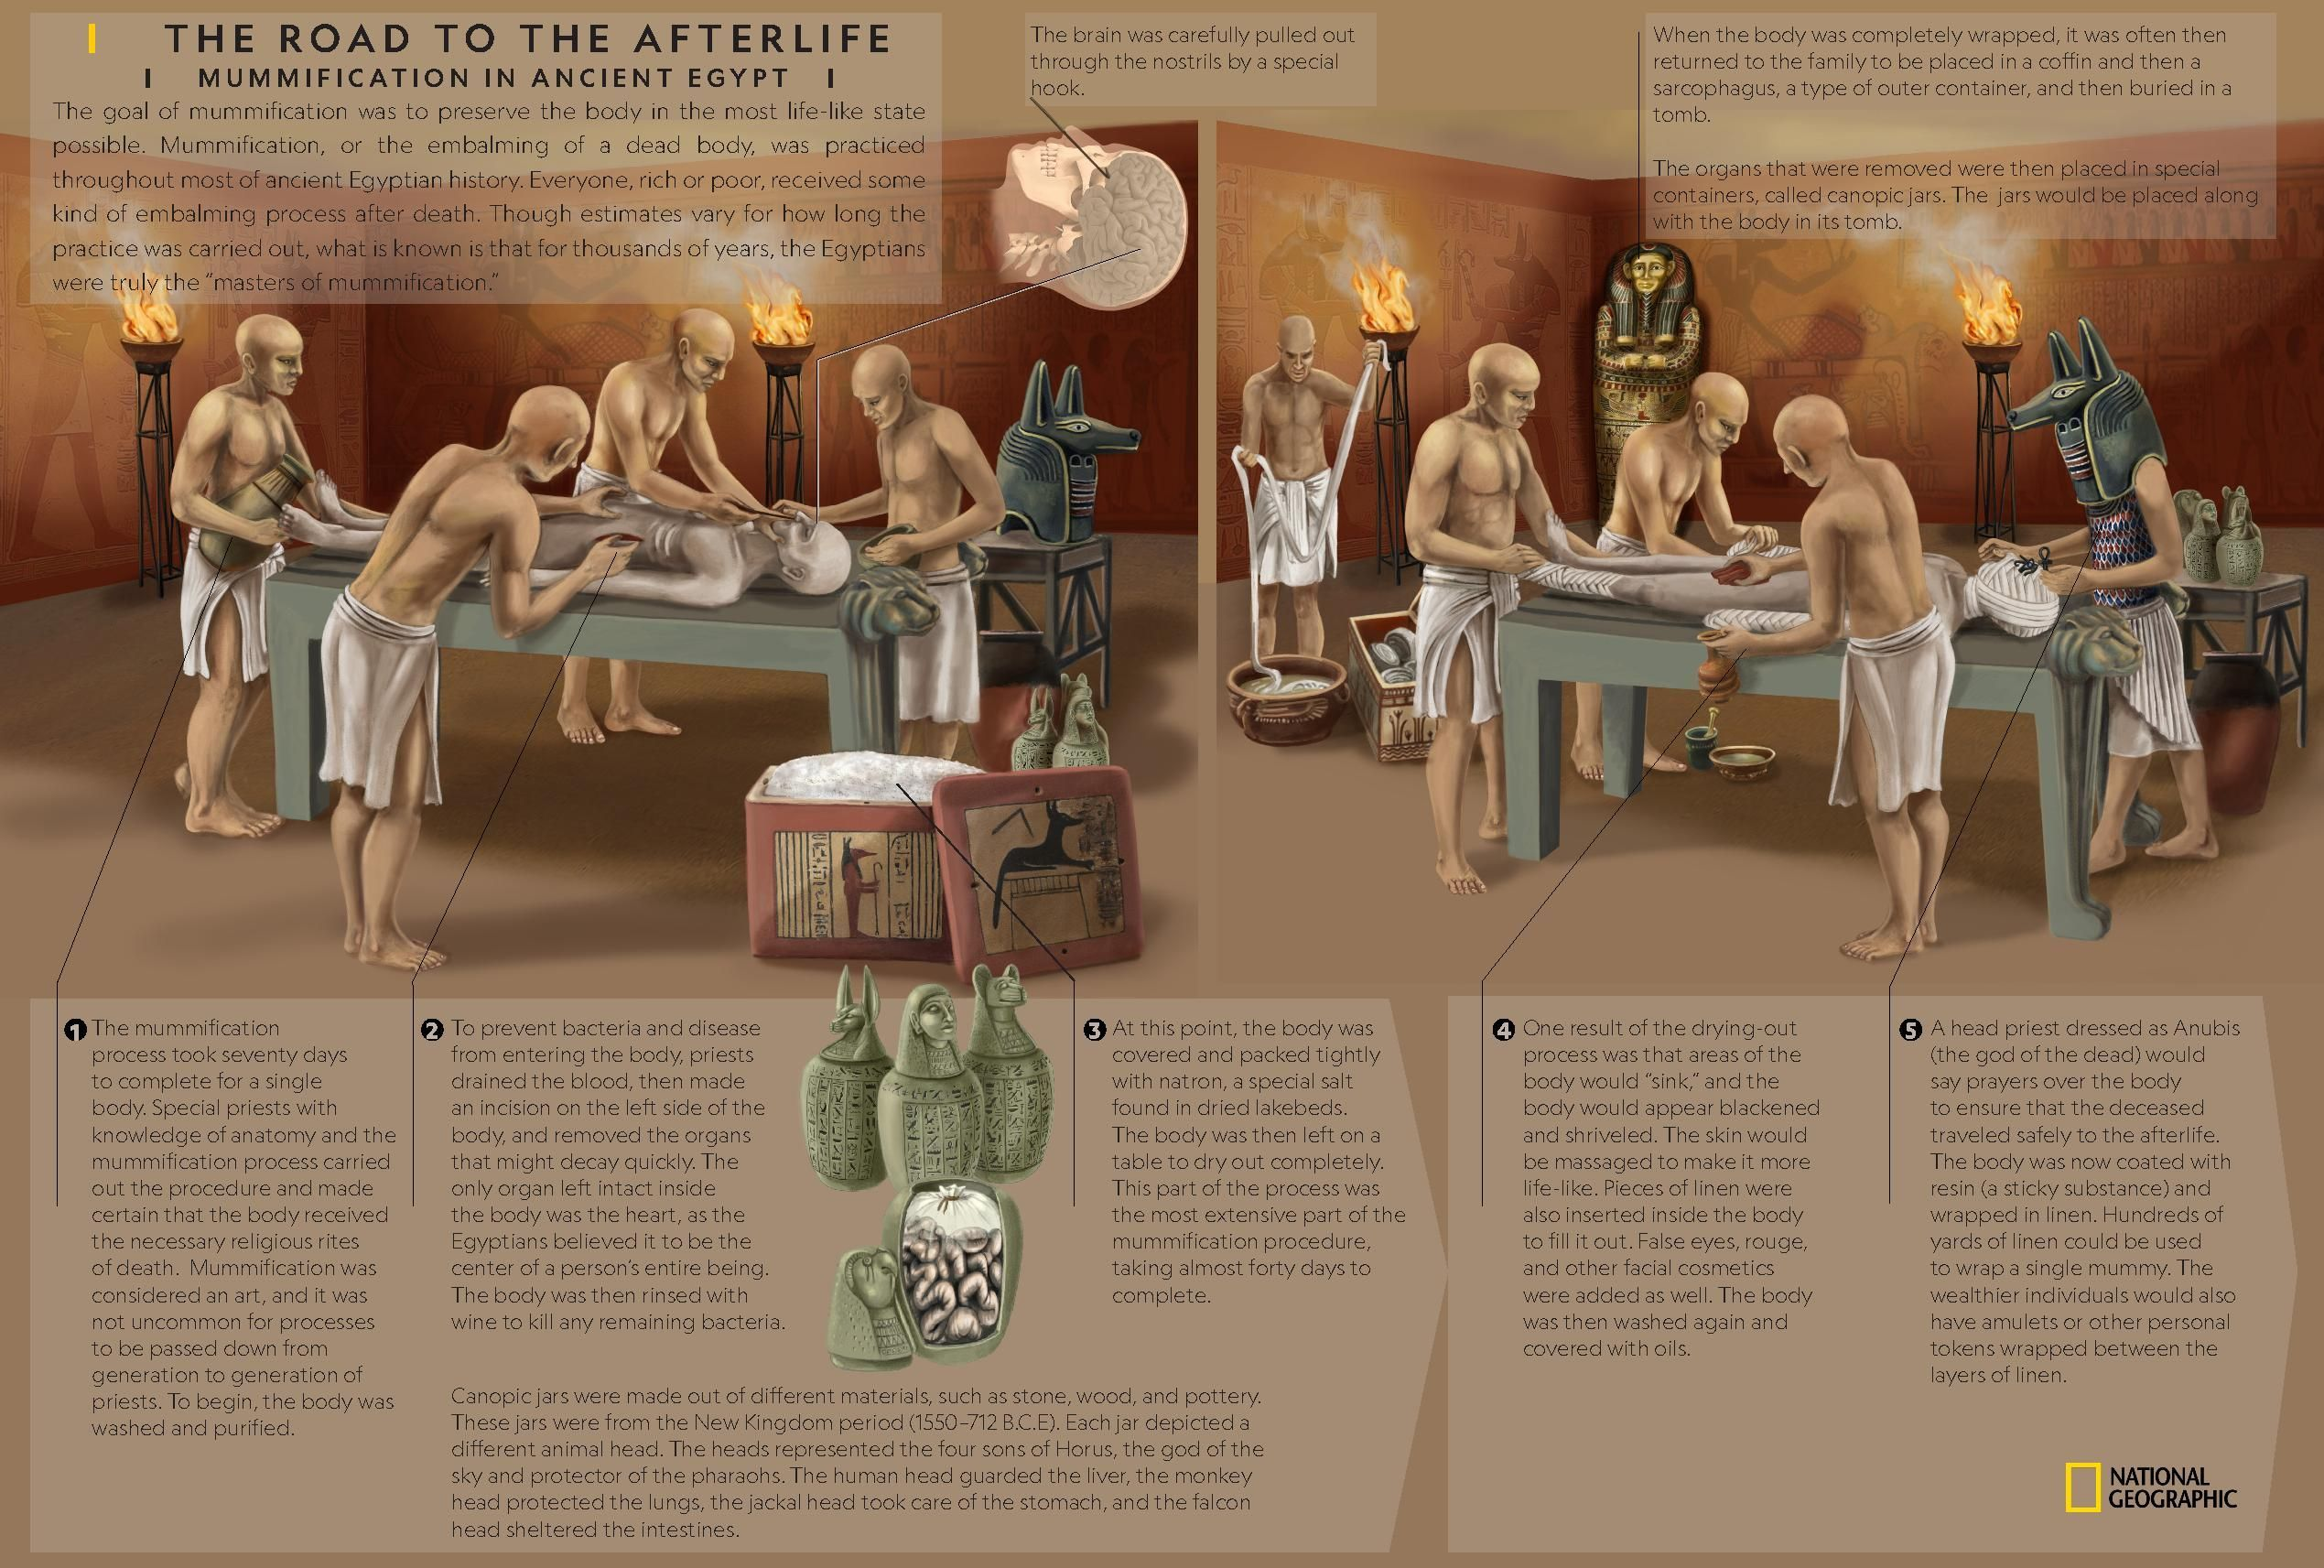 egyptian mummification process